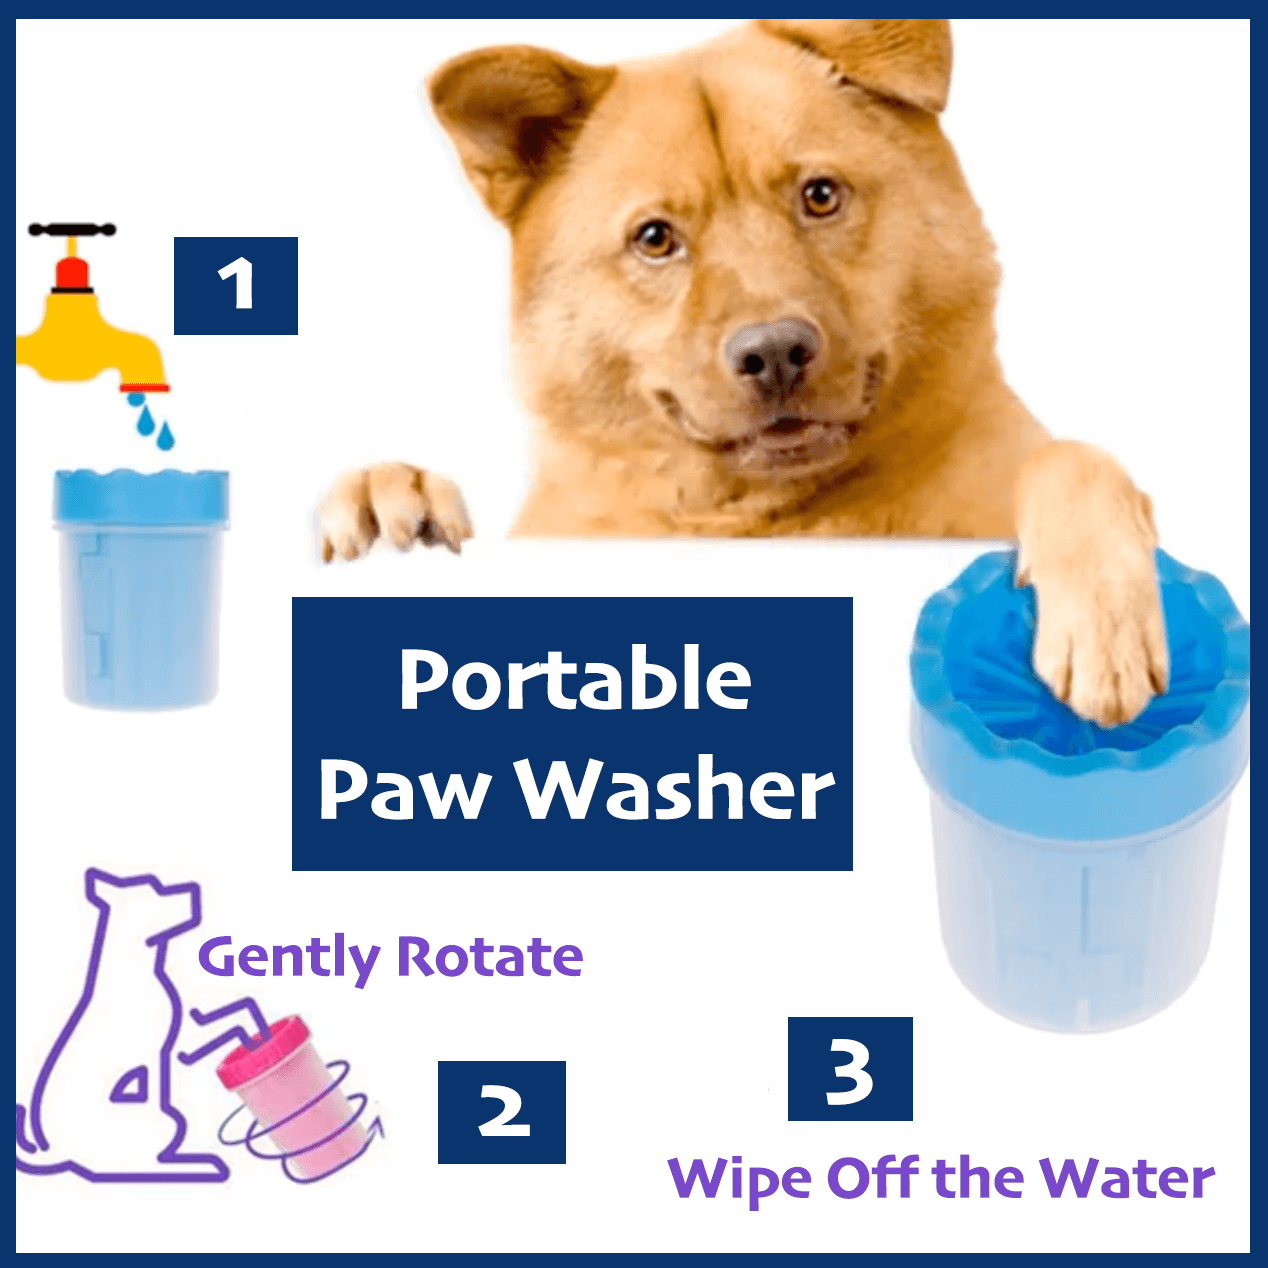 Portable Paw Washer